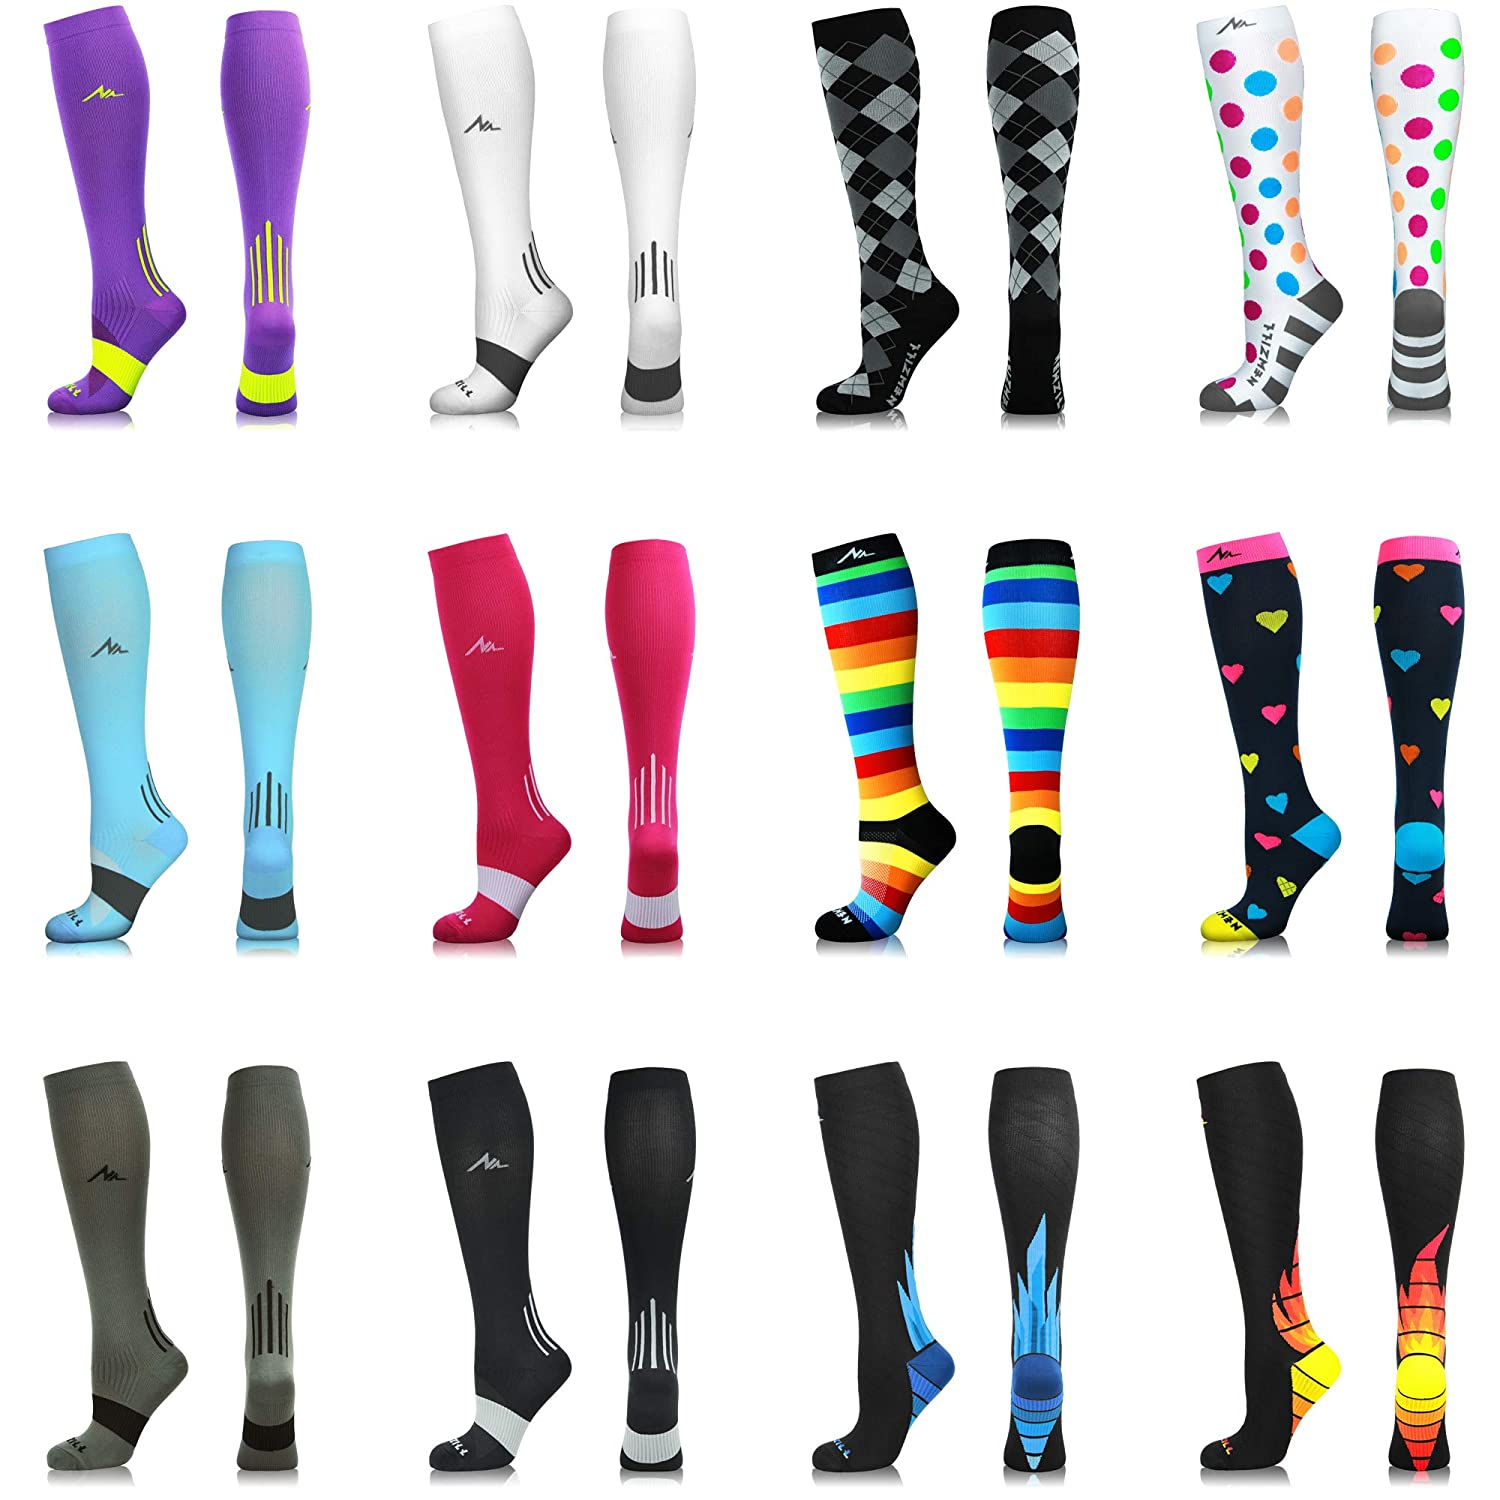 9bf06c0ff3 Amazon.com: NEWZILL Compression Socks (20-30mmHg) for Men & Women - Best  Stockings for Running, Medical, Athletic, Edema, Diabetic, Varicose Veins,  Travel, ...